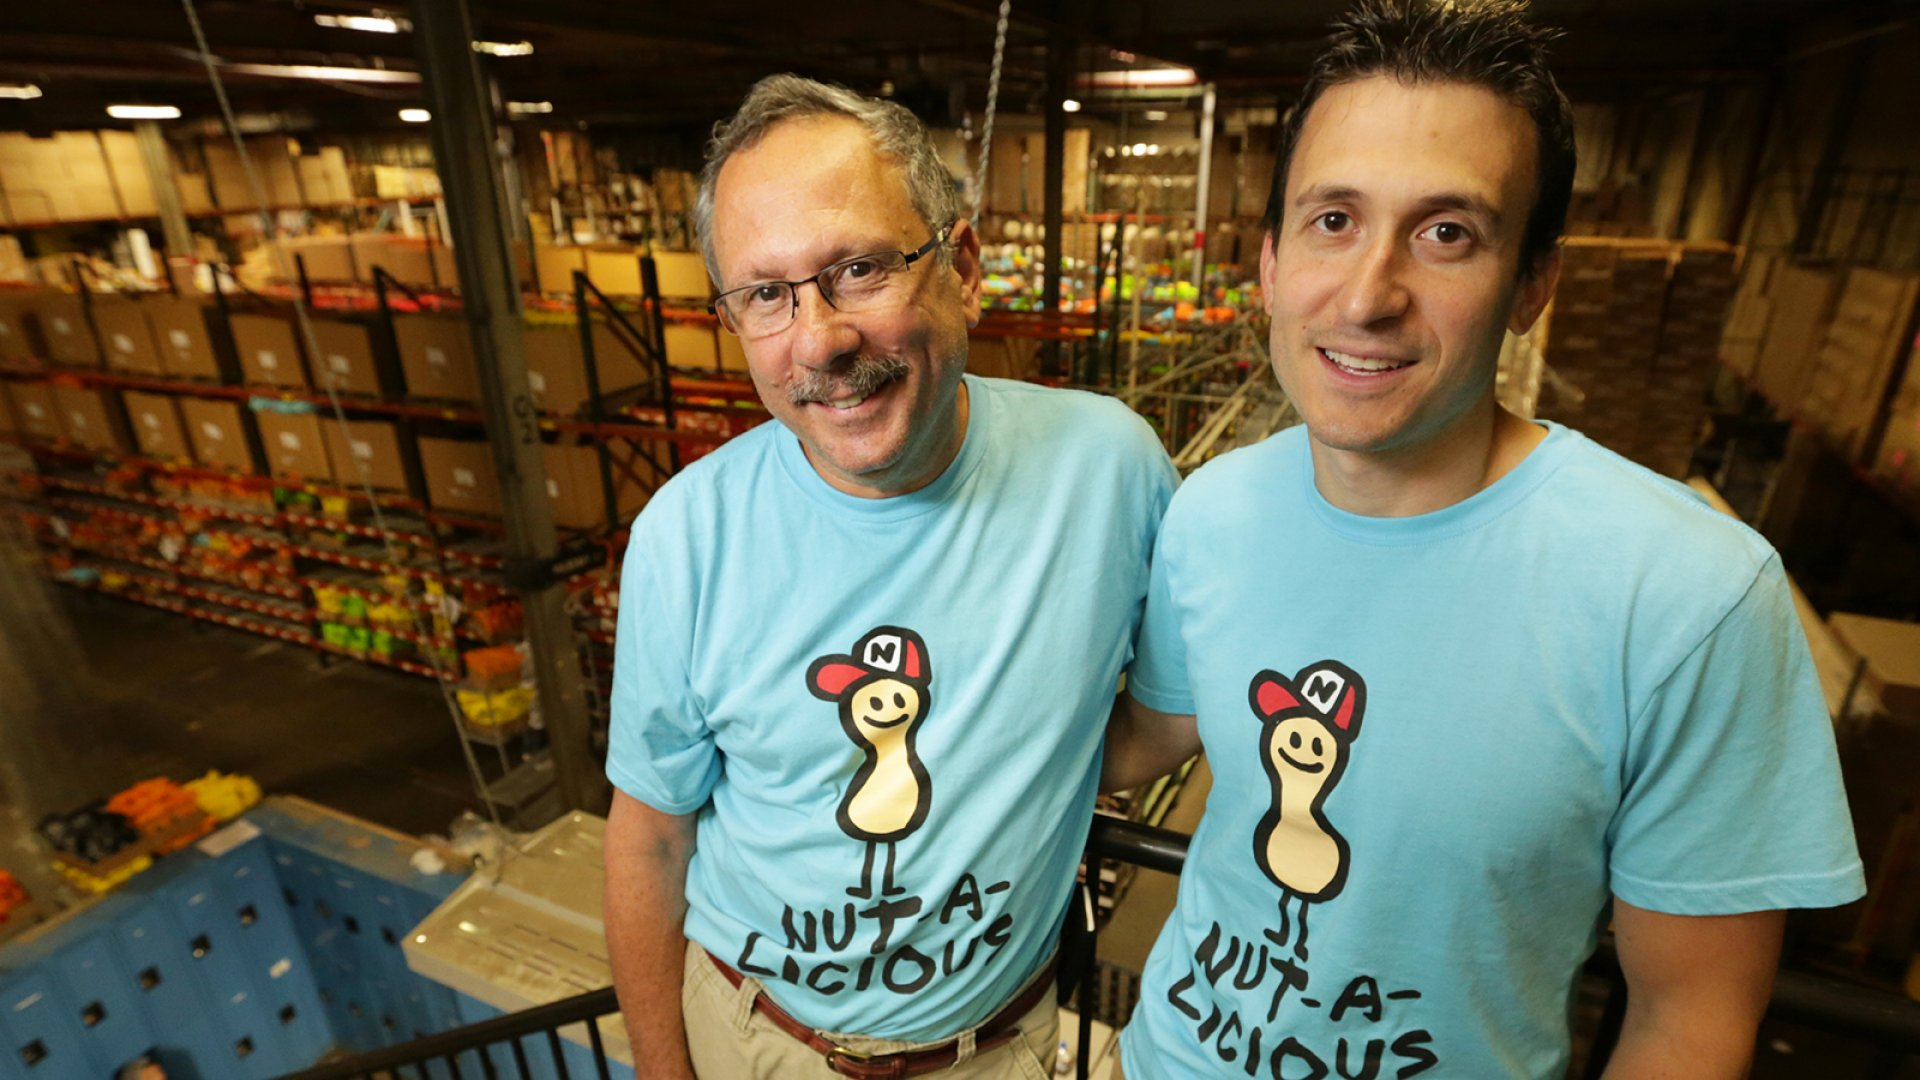 Father and son duo Kenny (left) and Jeffrey Braverman of Nuts.com.